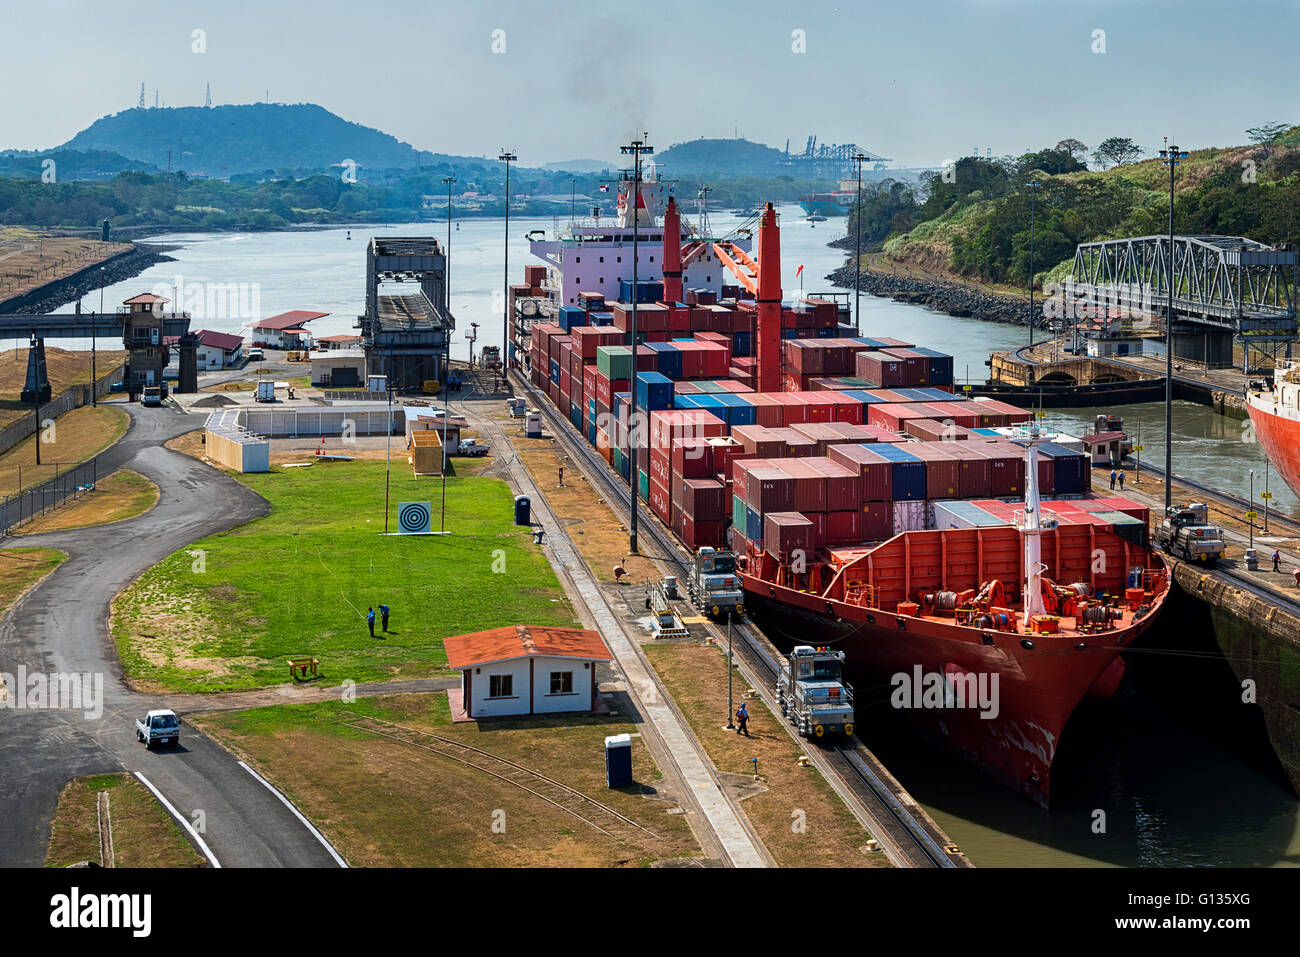 Panama Canal, Panama - March 3, 2014: A cargo ship entering the Miraflores Locks in the Panama Canal, in Panama - Stock Image